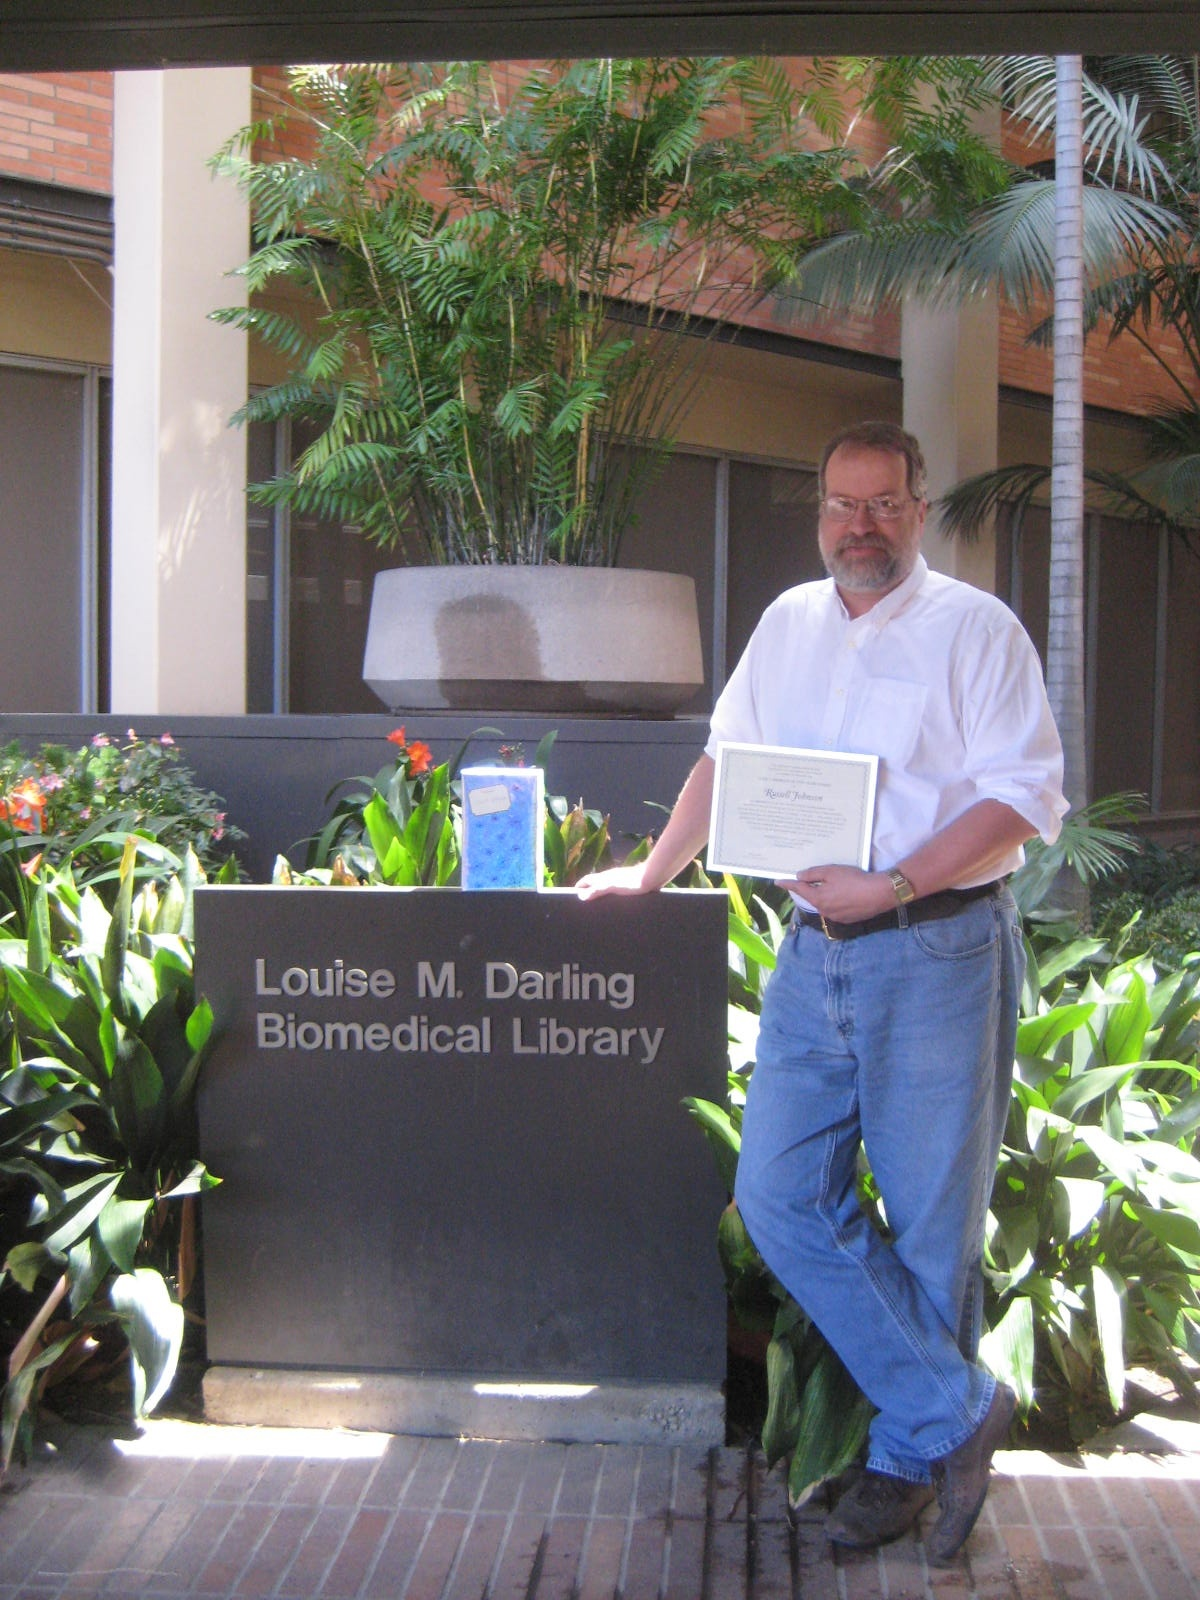 Russel Johnson holding certificate by the Louise M. Darling Biomedical Library sign.